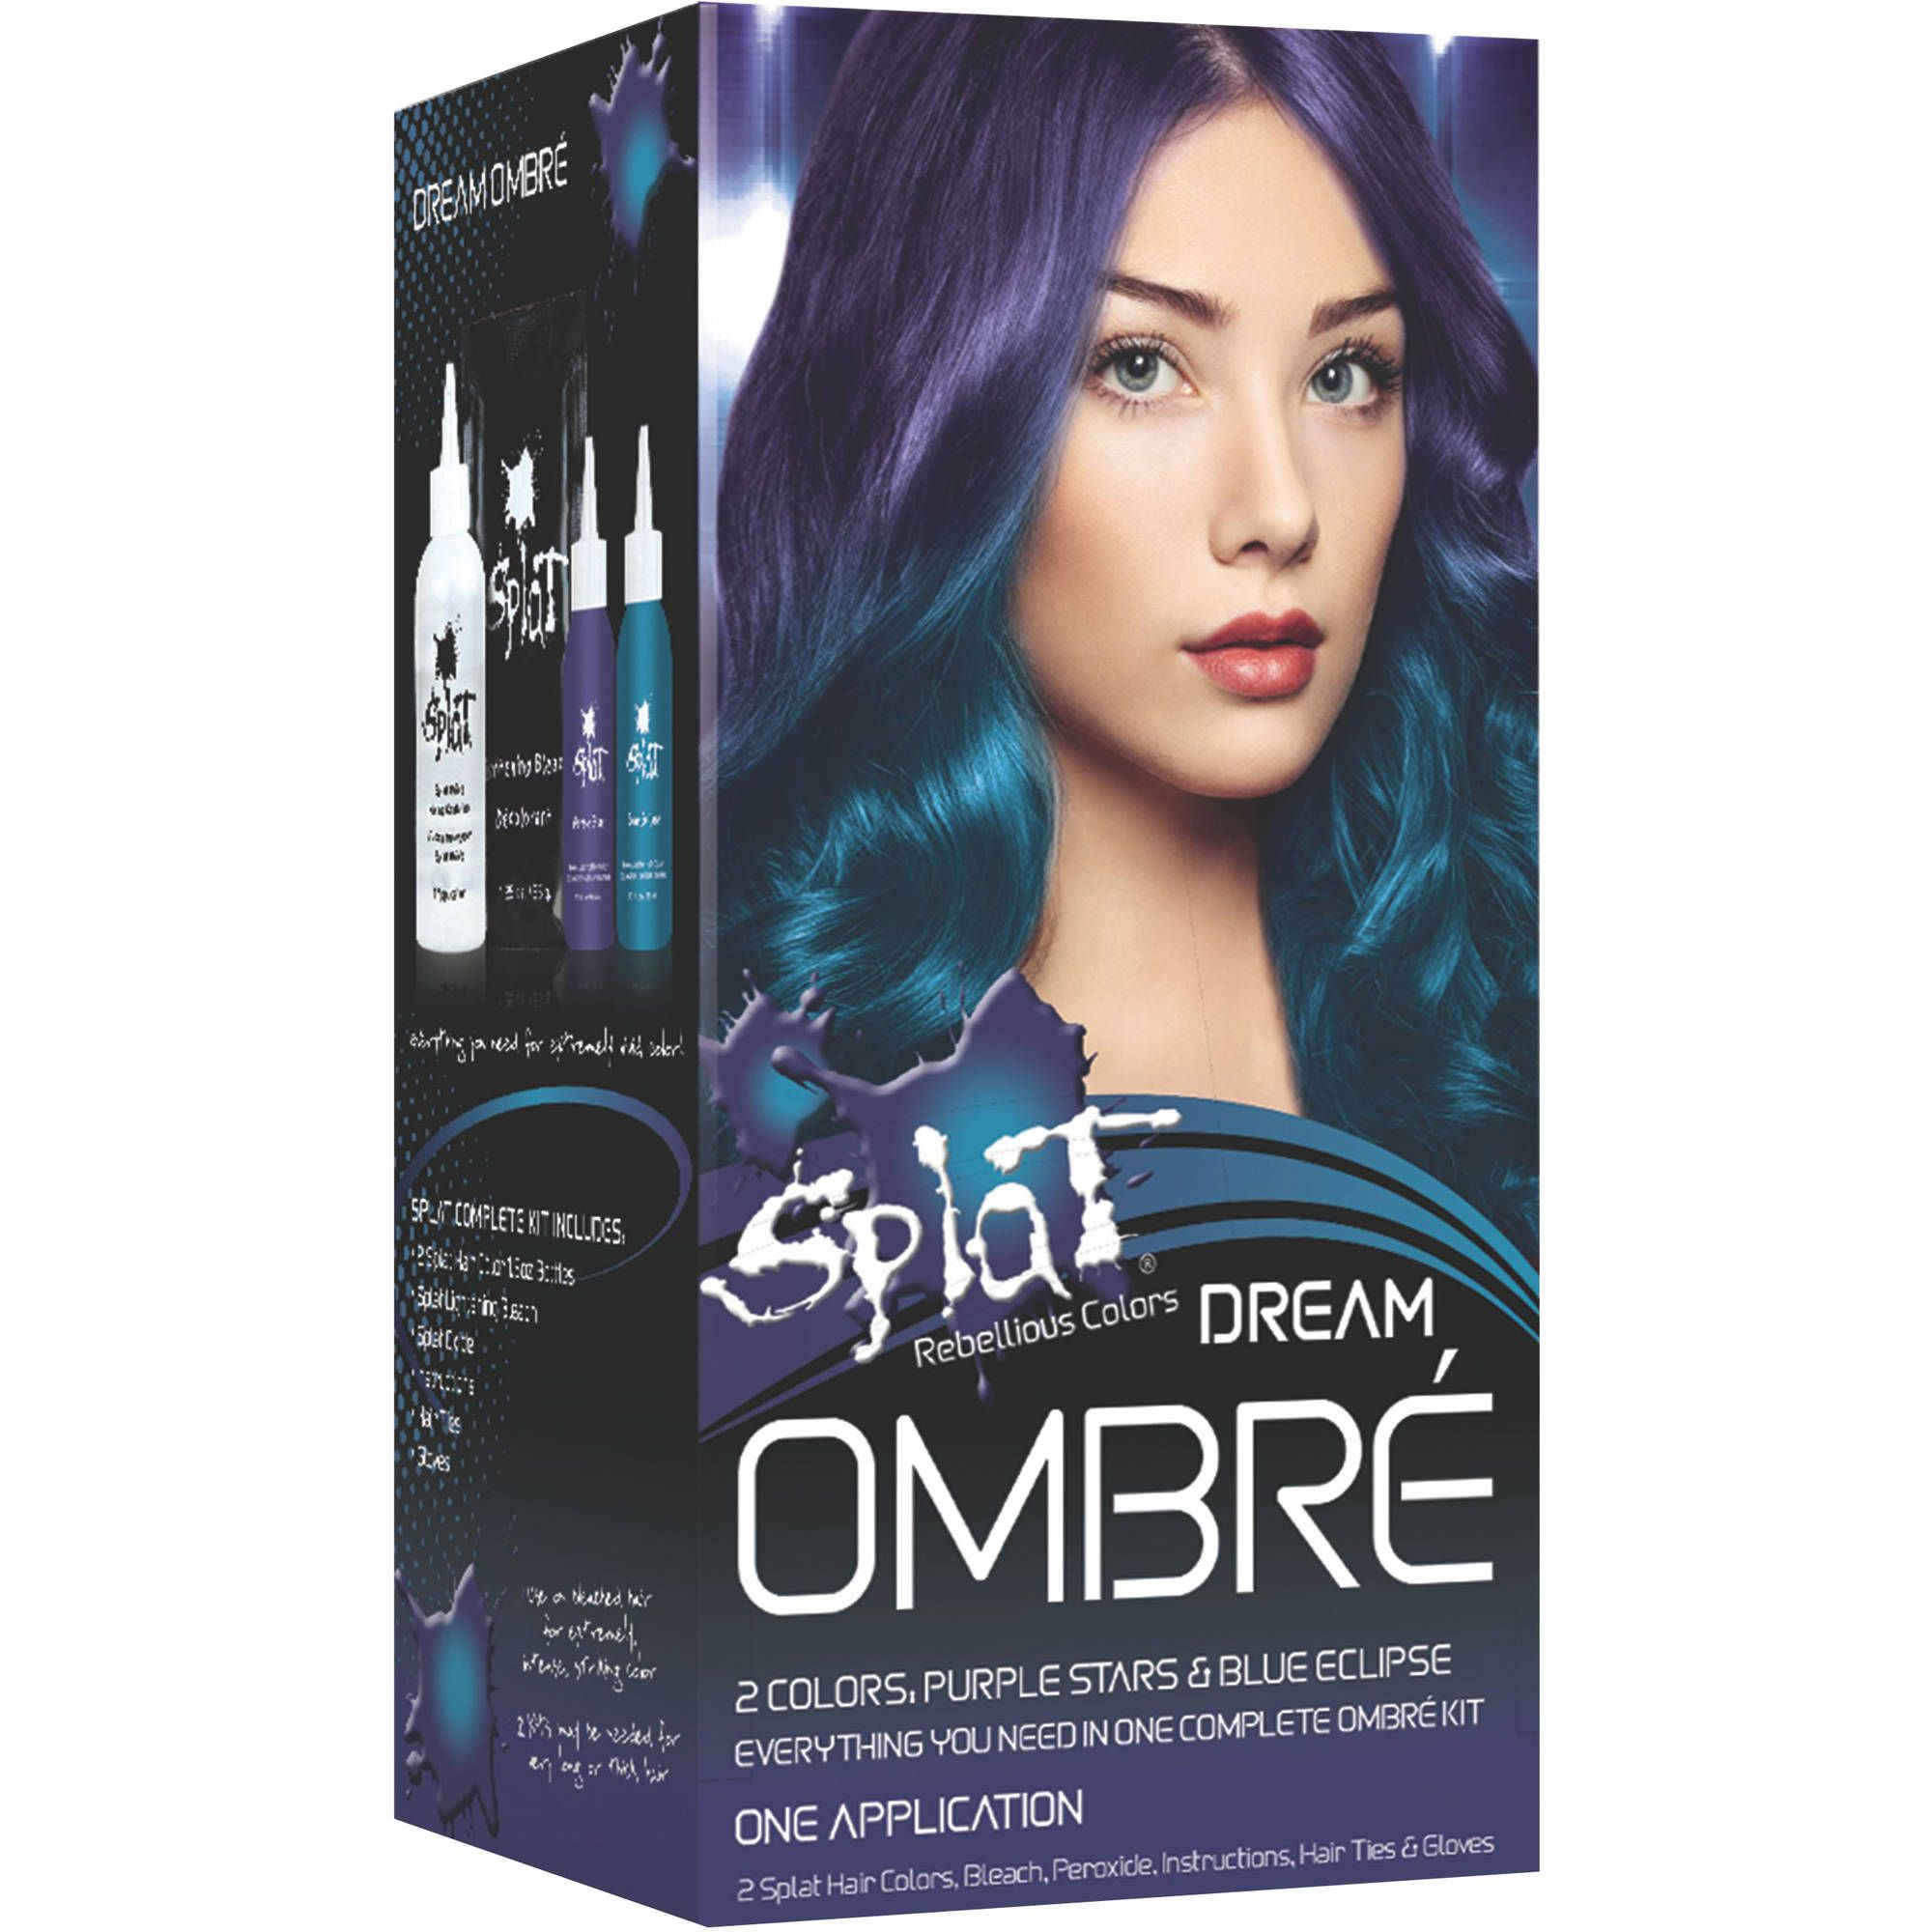 Splat Complete Kit Ombre Dream Semi Permanent Blue Purple Hair Dye With Bleach Walmart Com In 2020 Splat Hair Color Semi Permanent Hair Dye Semi Permanent Hair Color